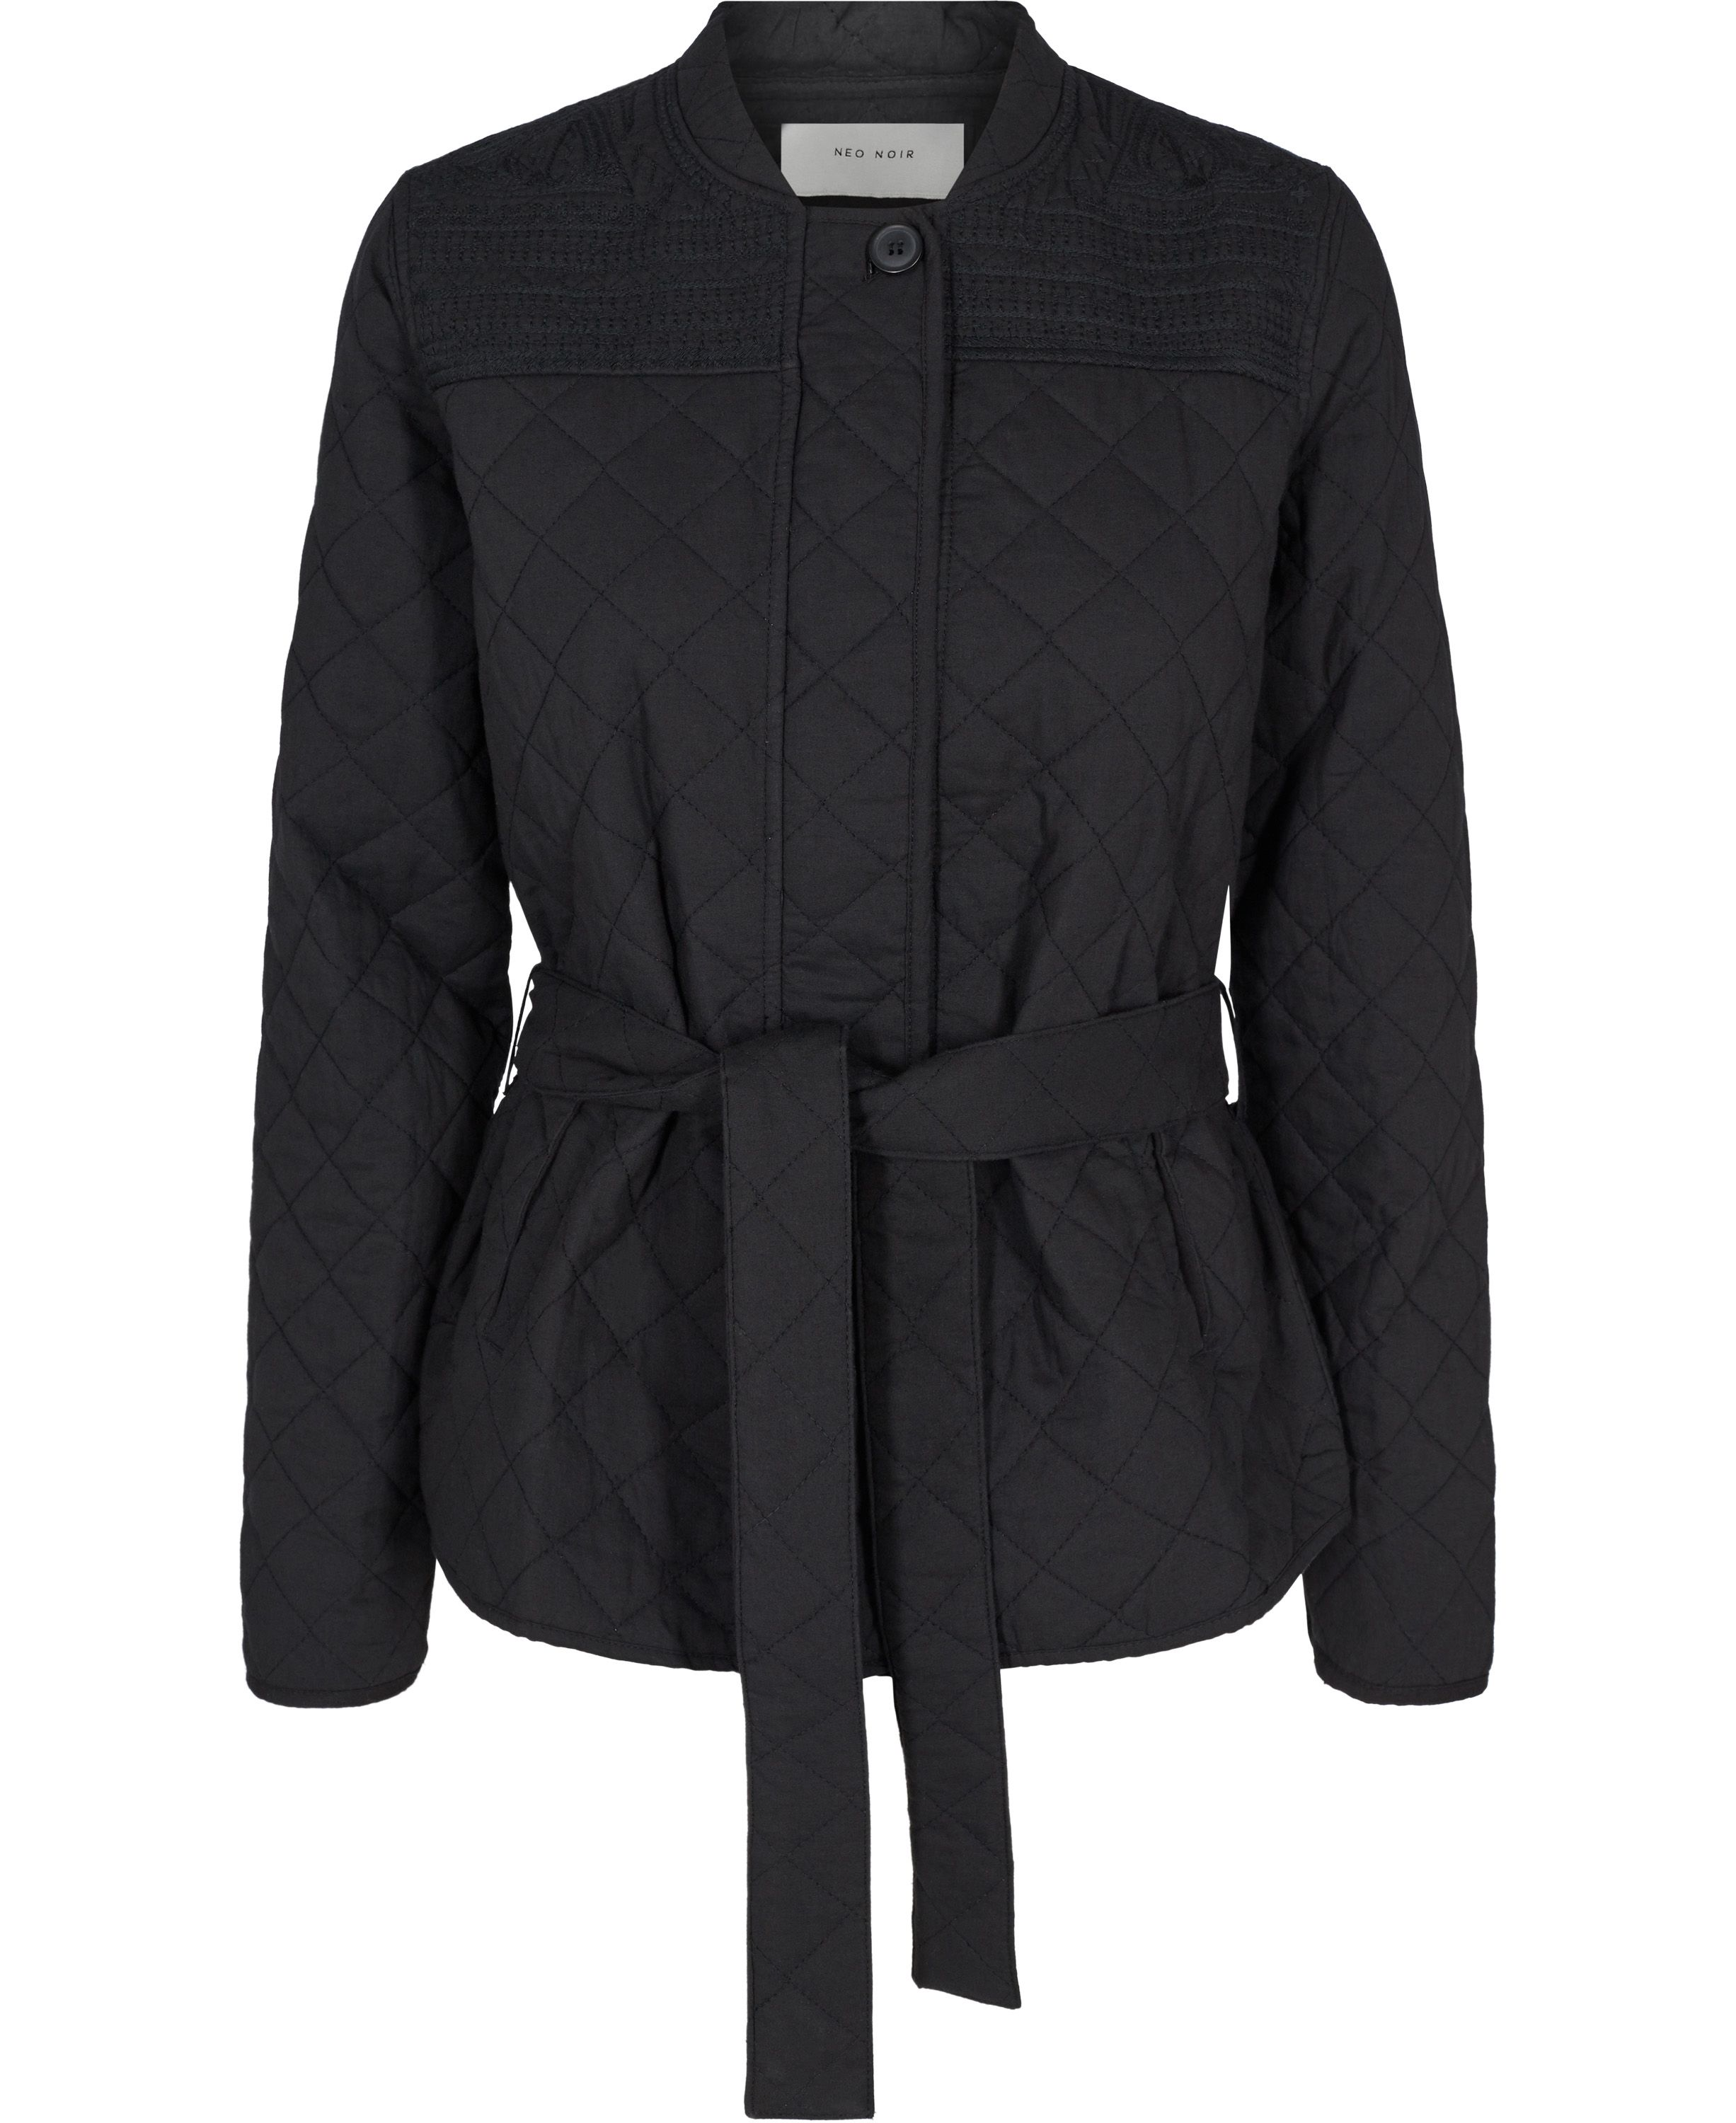 8b02706731e Neo Noir Jamina quilt | Tøj osv | Winter jackets, Jackets, Leather ...